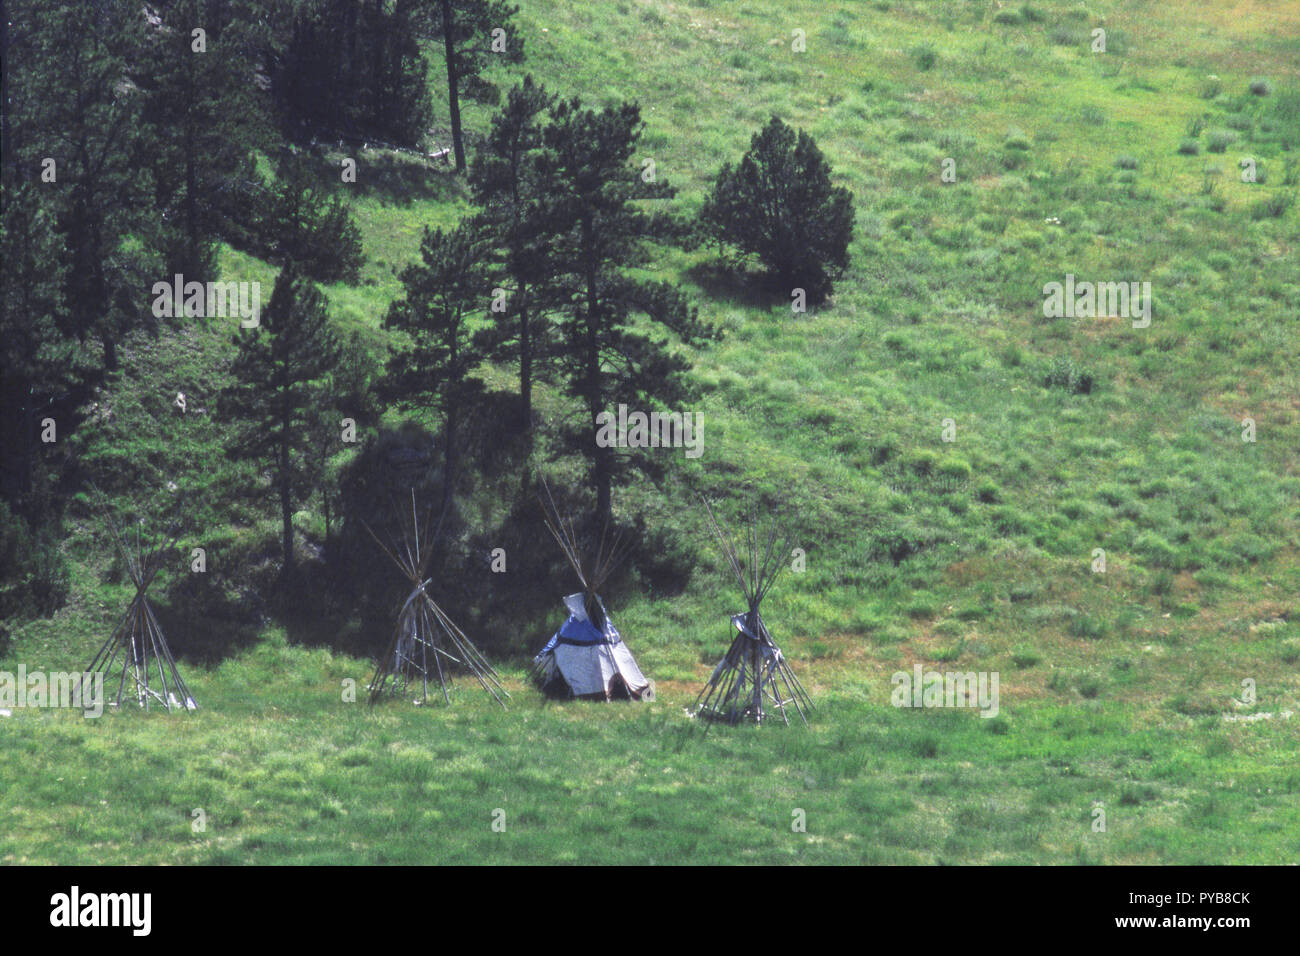 Sioux tipi and frames on the Cheyenne River, Black Hills, South Dakota, used in movie 'Crazy Horse.' Photograph - Stock Image